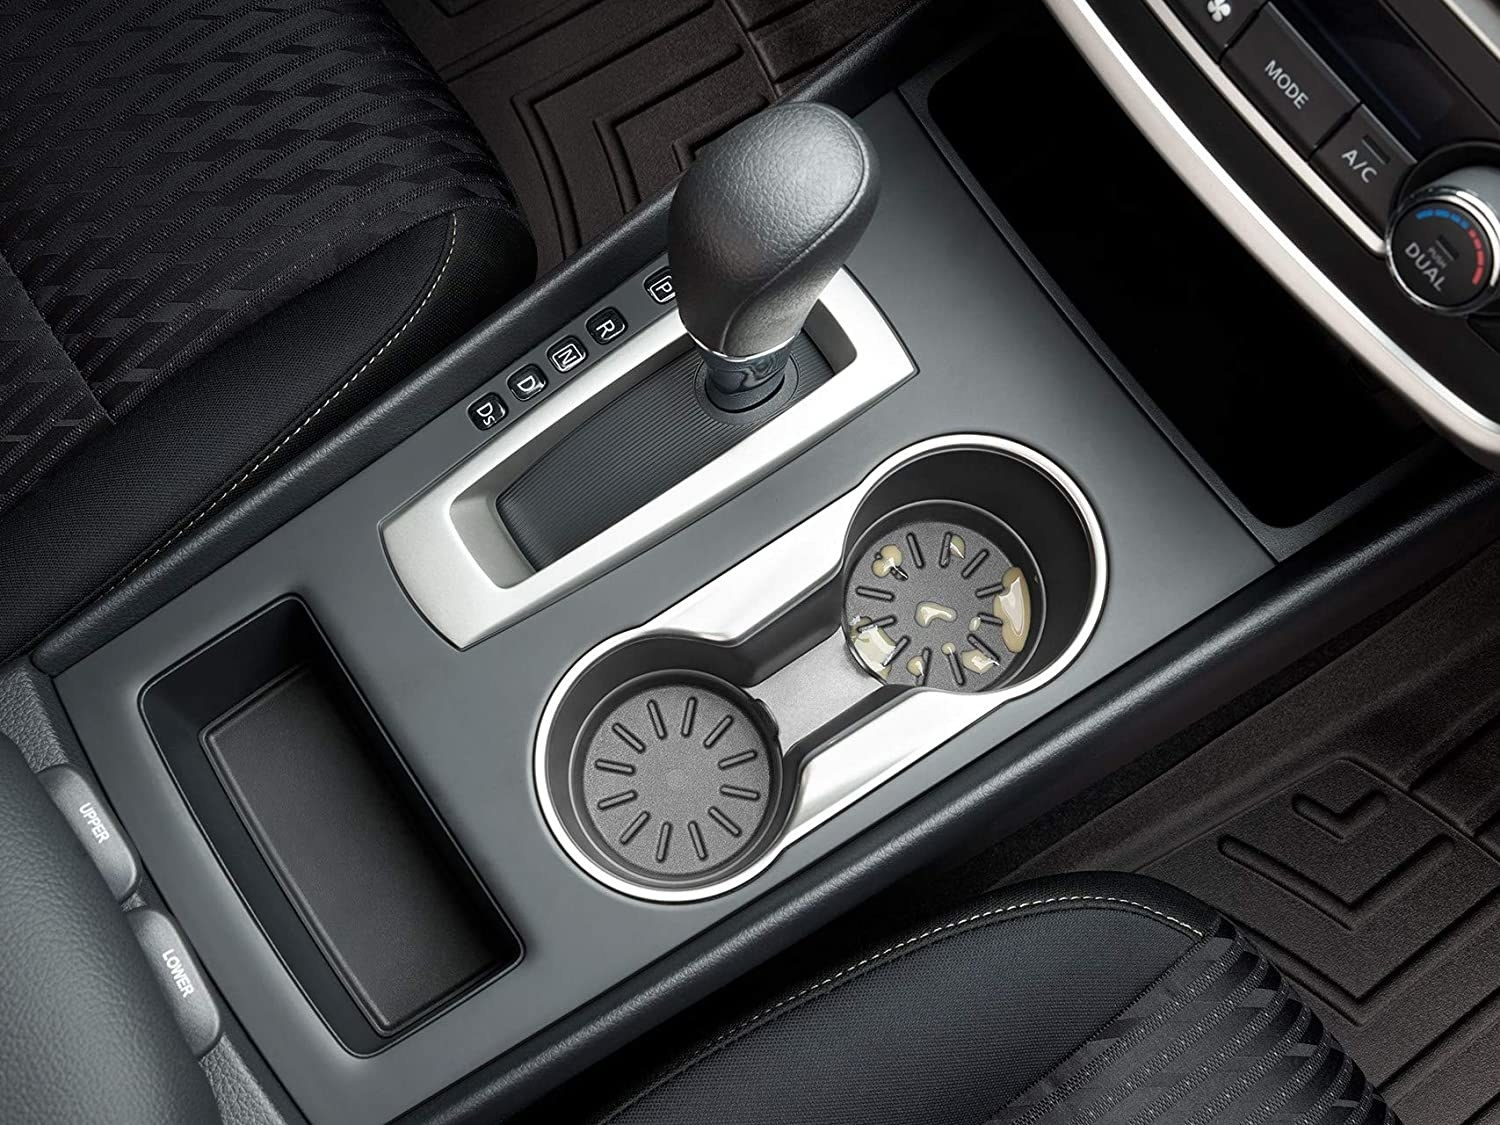 A car console with removable coasters in the cup holders